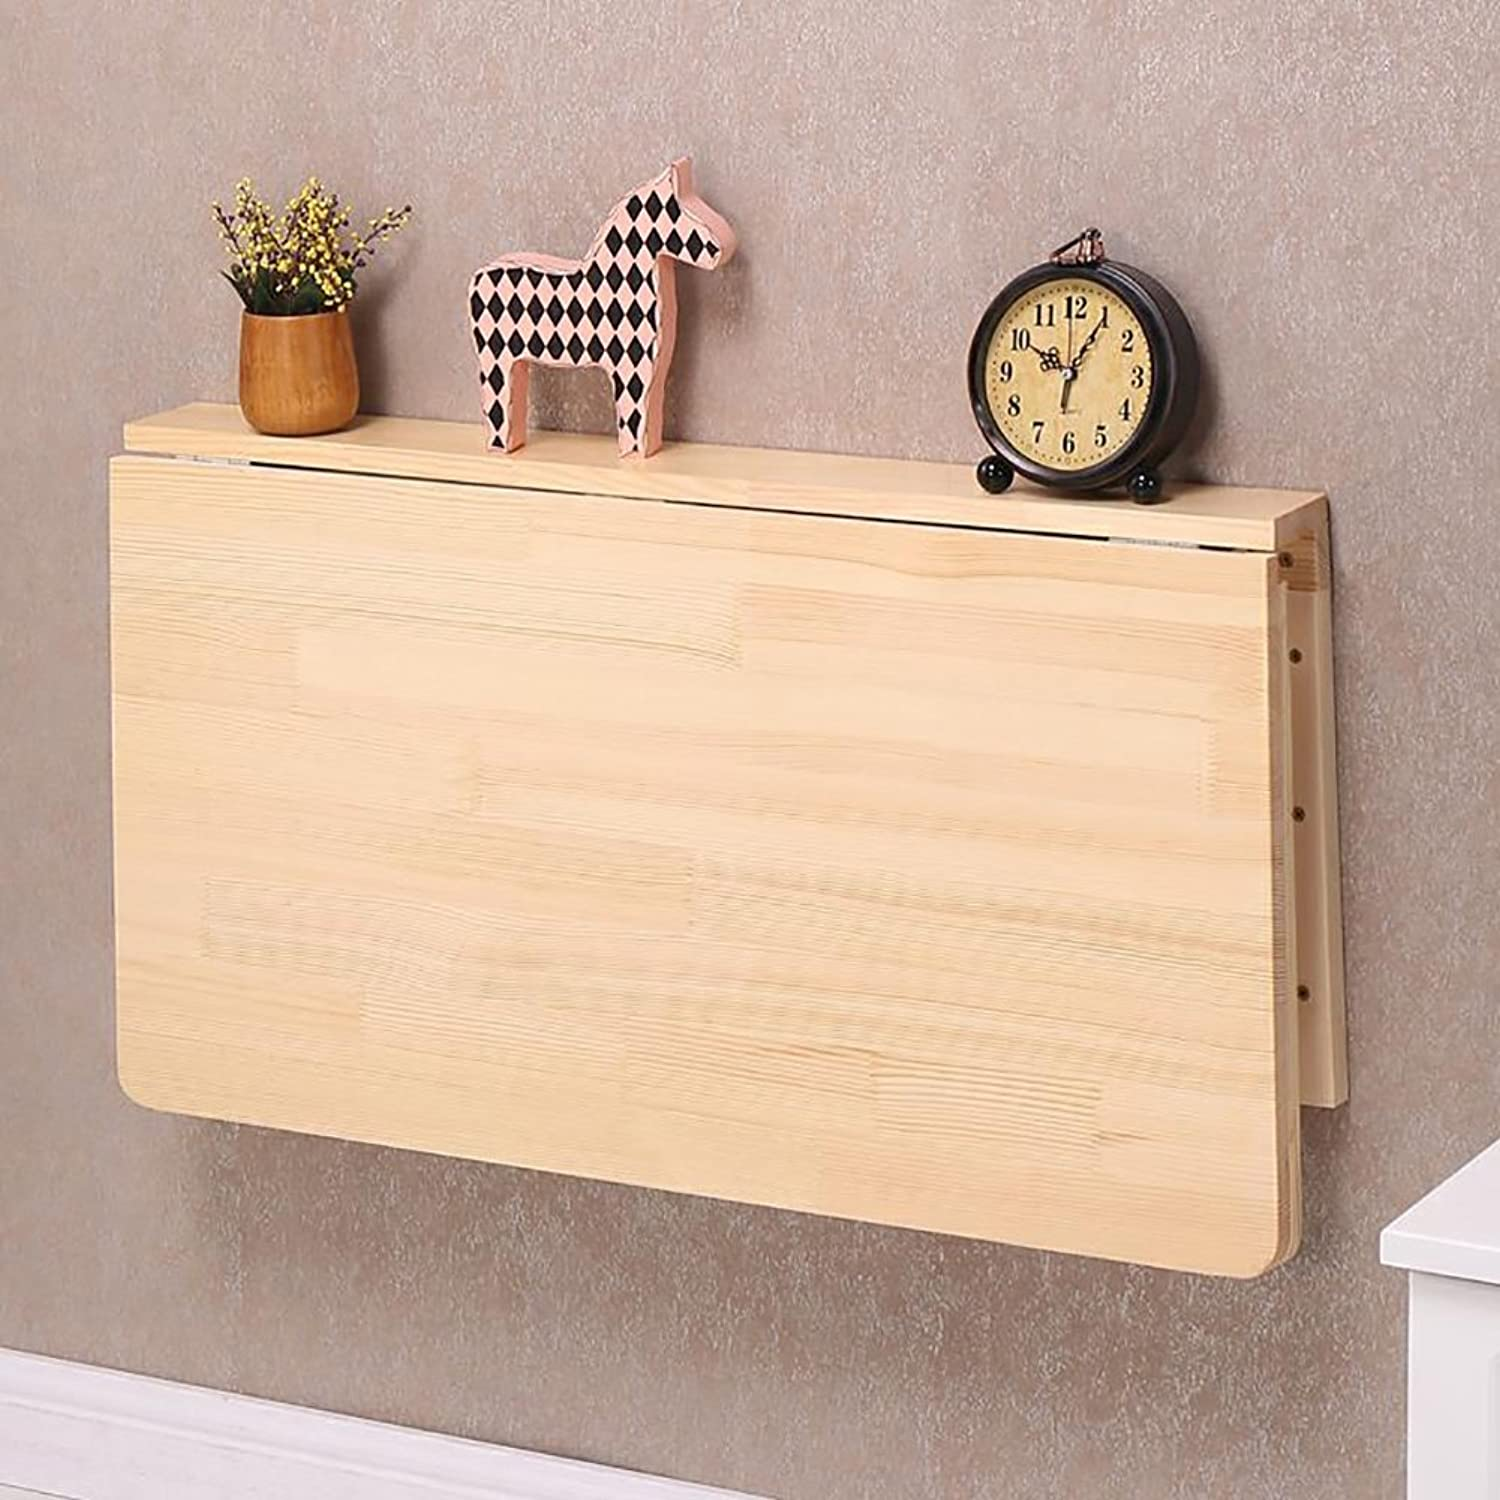 ZJM- Wood Wall Hanging Folding Table Wall Mounted Side Table Kitchen Dining Table Computer Desk (Size   10040cm)